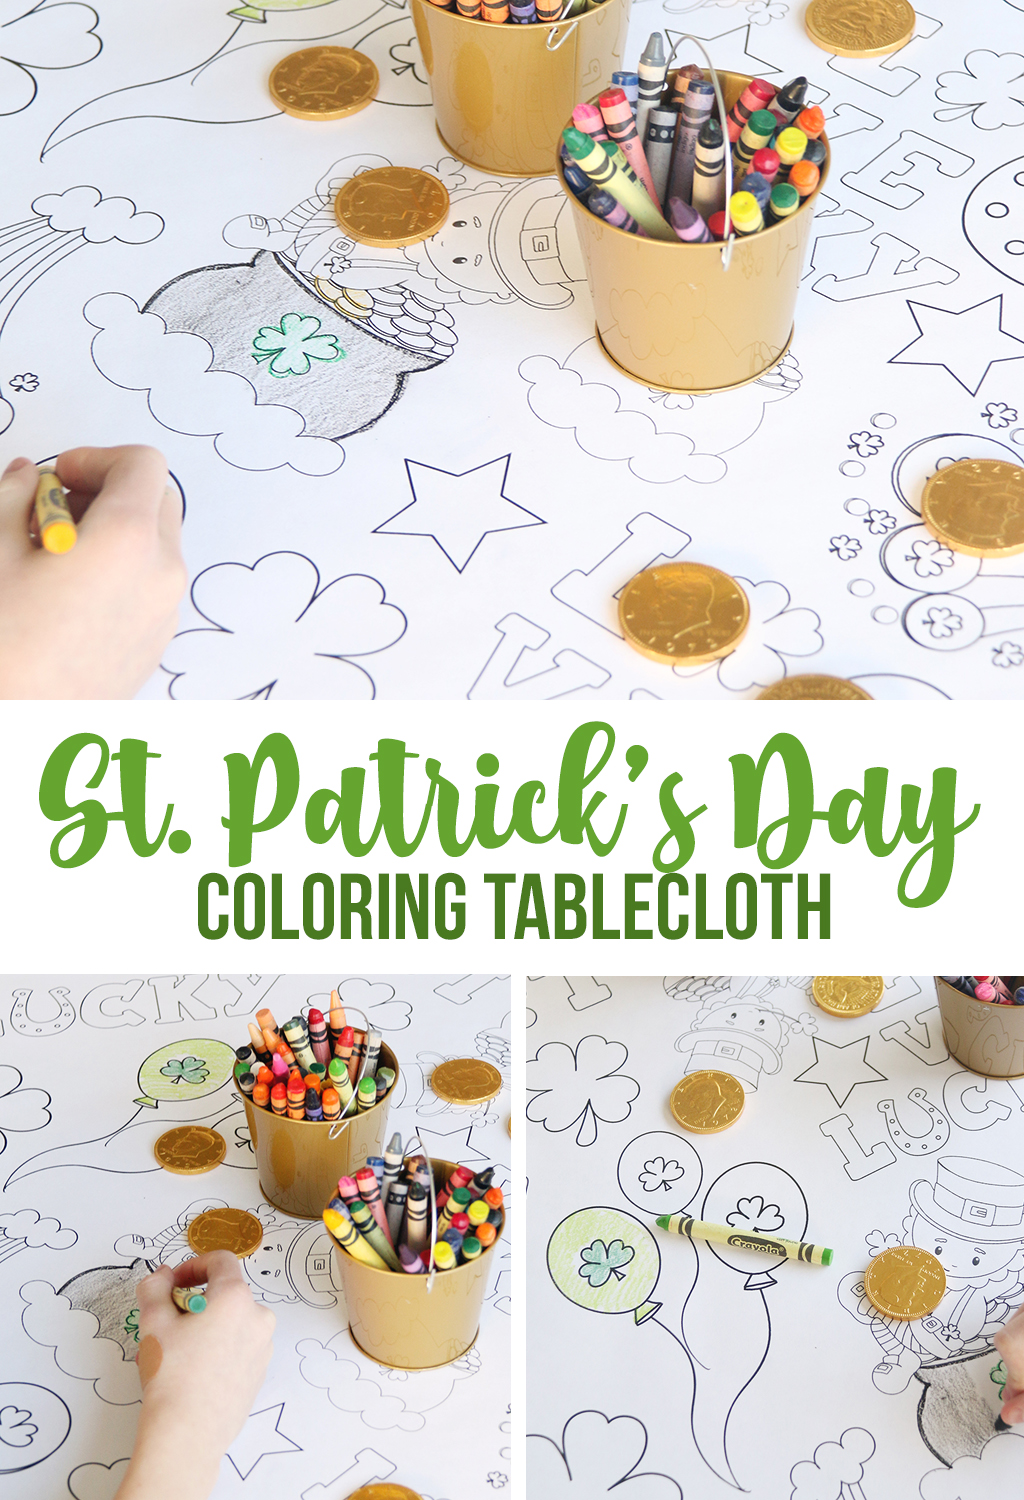 St. Patrick's Day Coloring Tablecloth. Printable tablecloth to color.